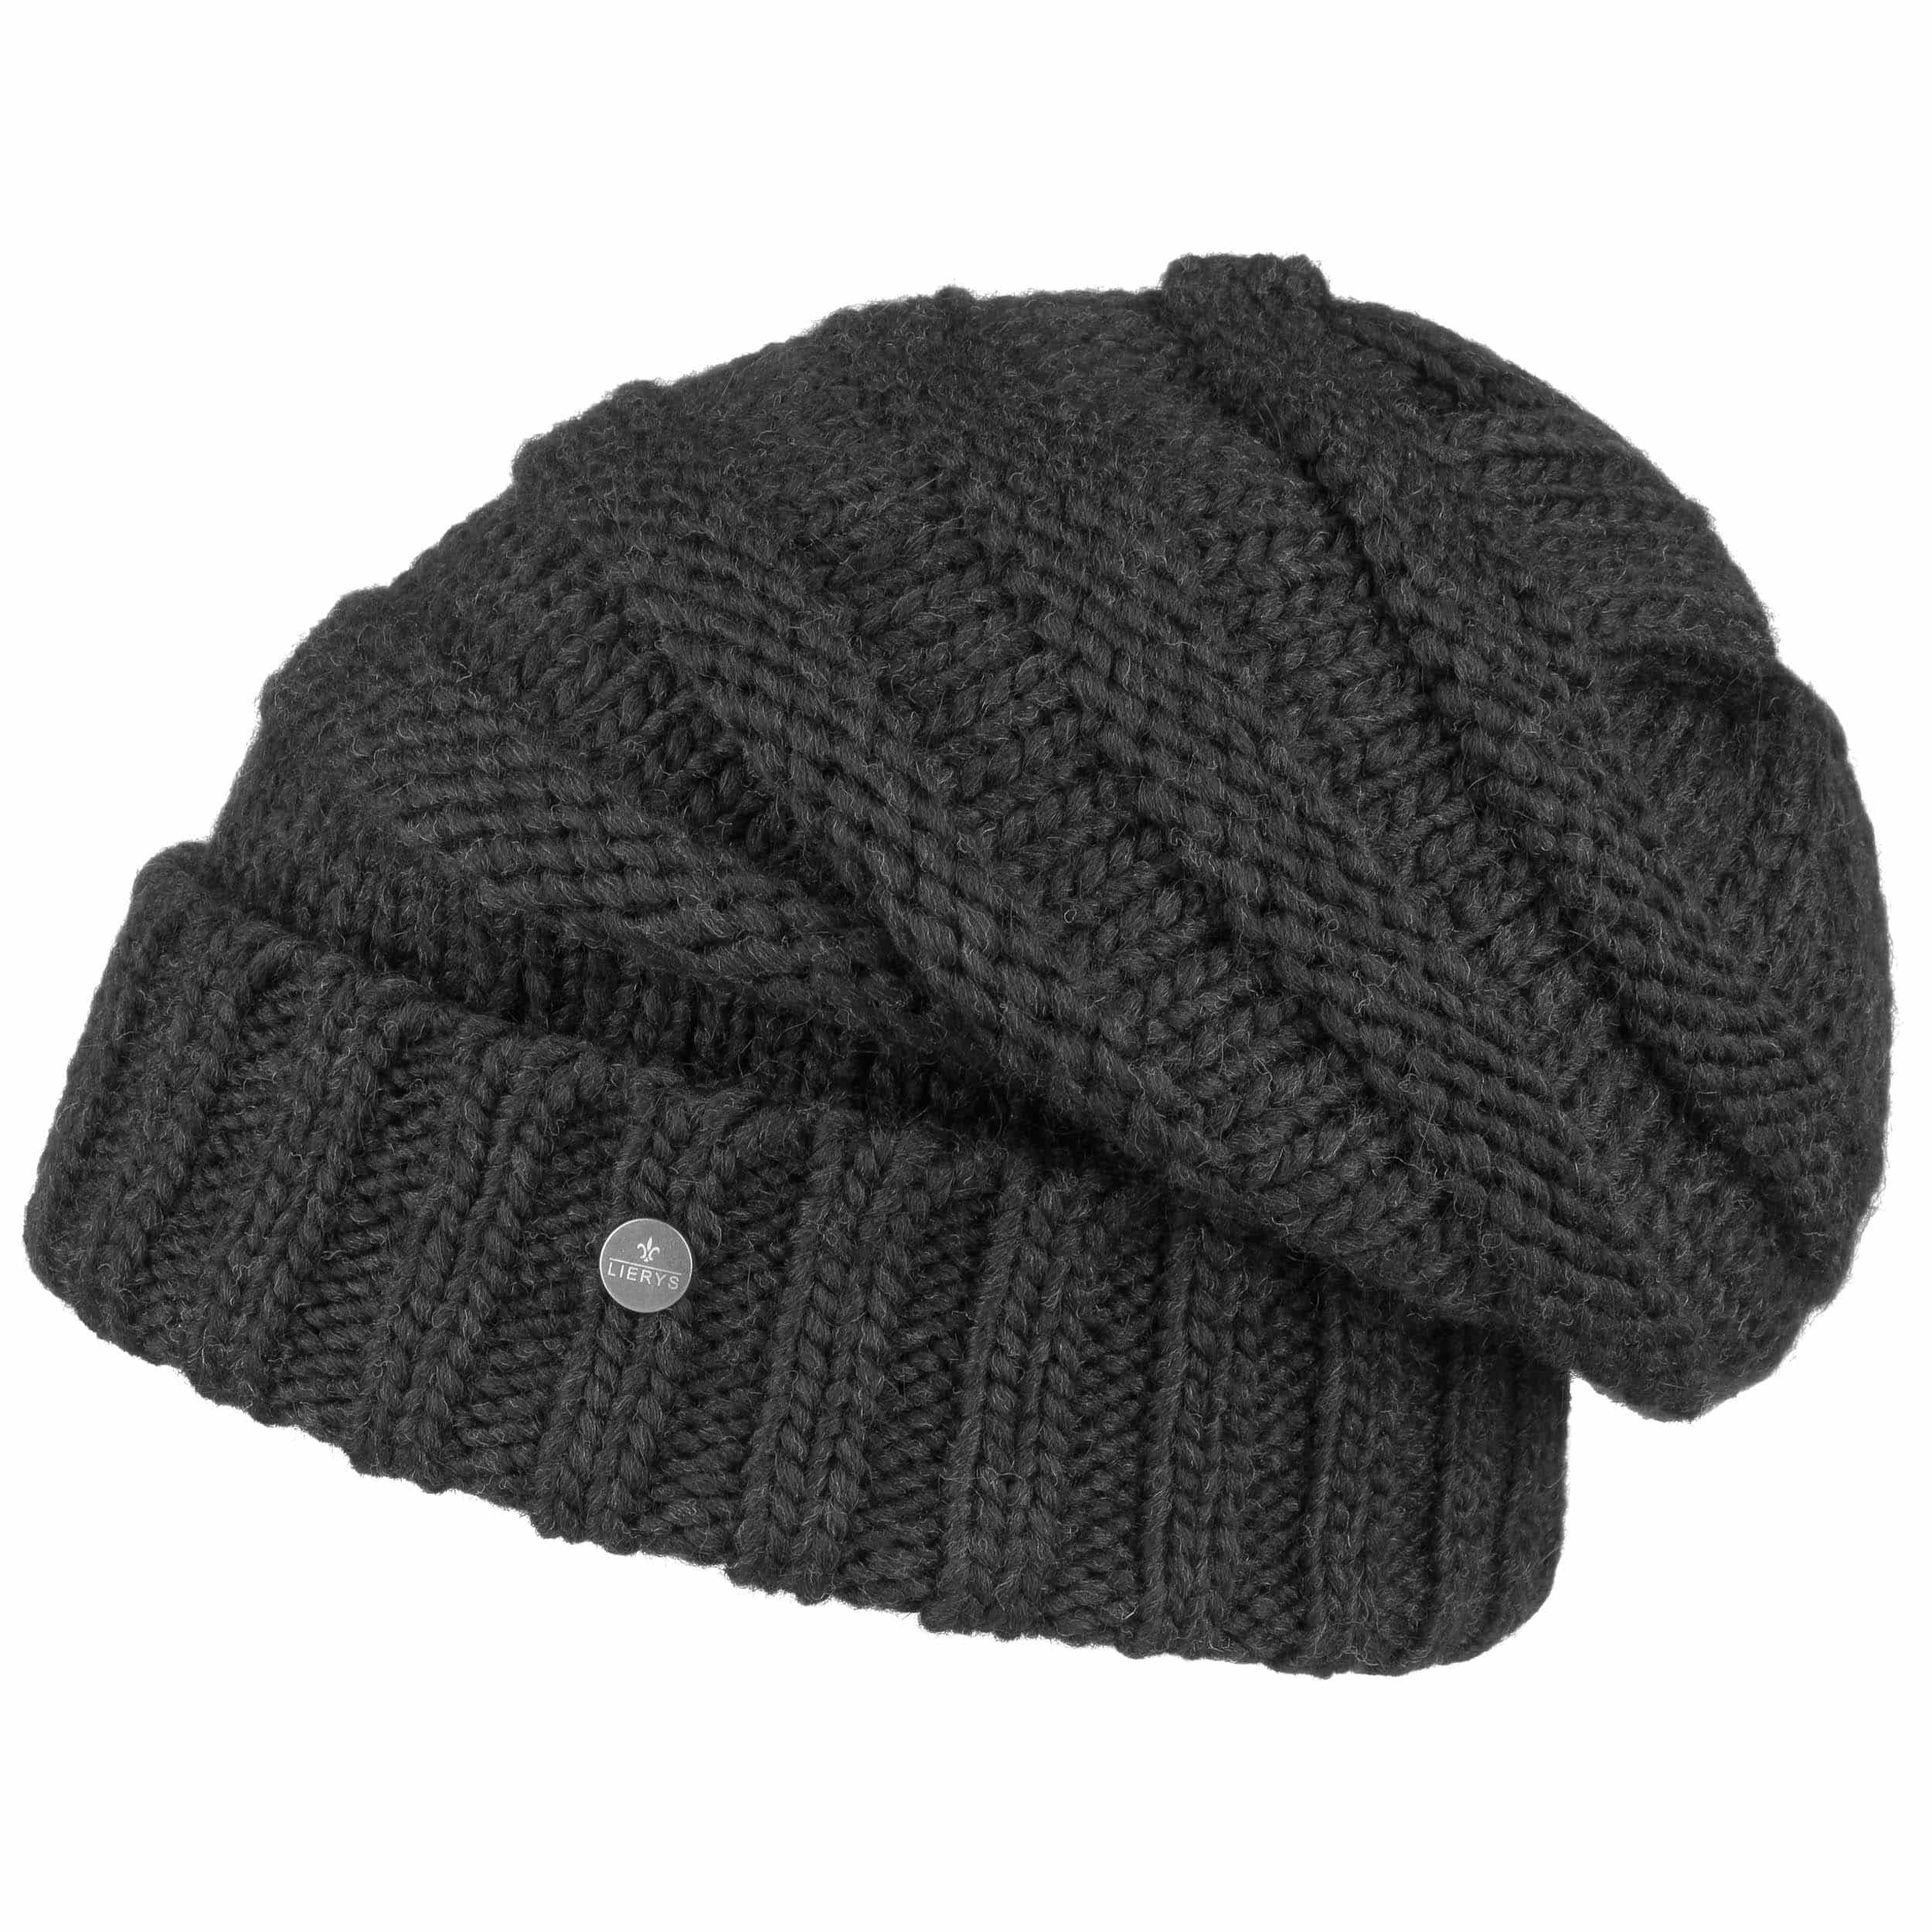 ... Long Beanie Knit Hat by Lierys - black 1 ... a813ab091c6